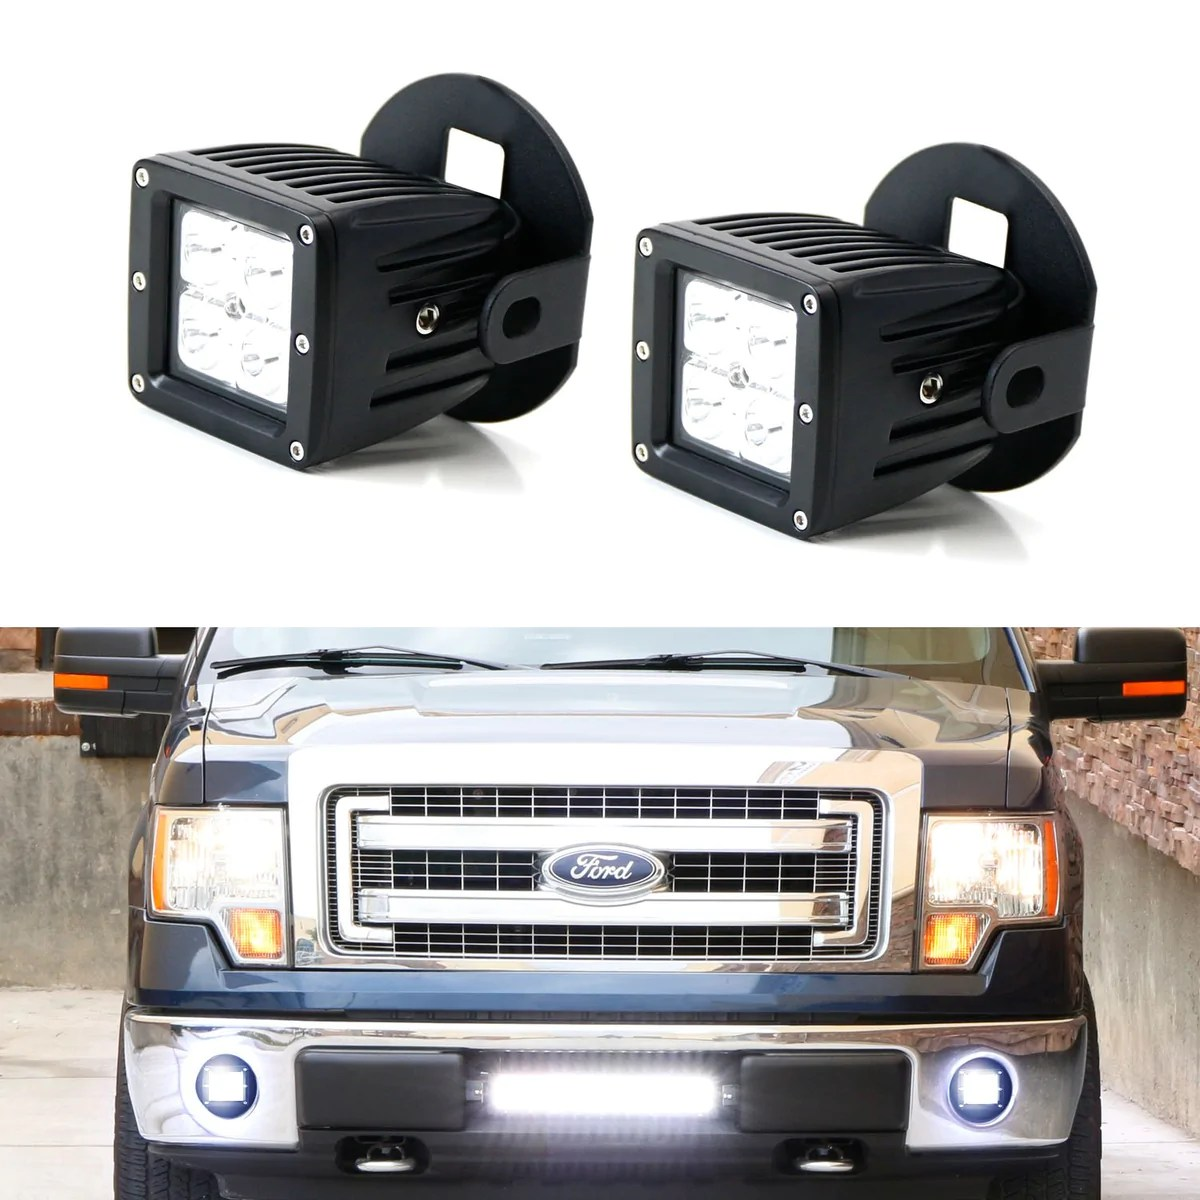 hight resolution of led pod light fog lamp kit for 2006 14 ford f150 2011 14 lincoln mark lt includes 2 20w high power cree led cubes foglight location mounting brackets